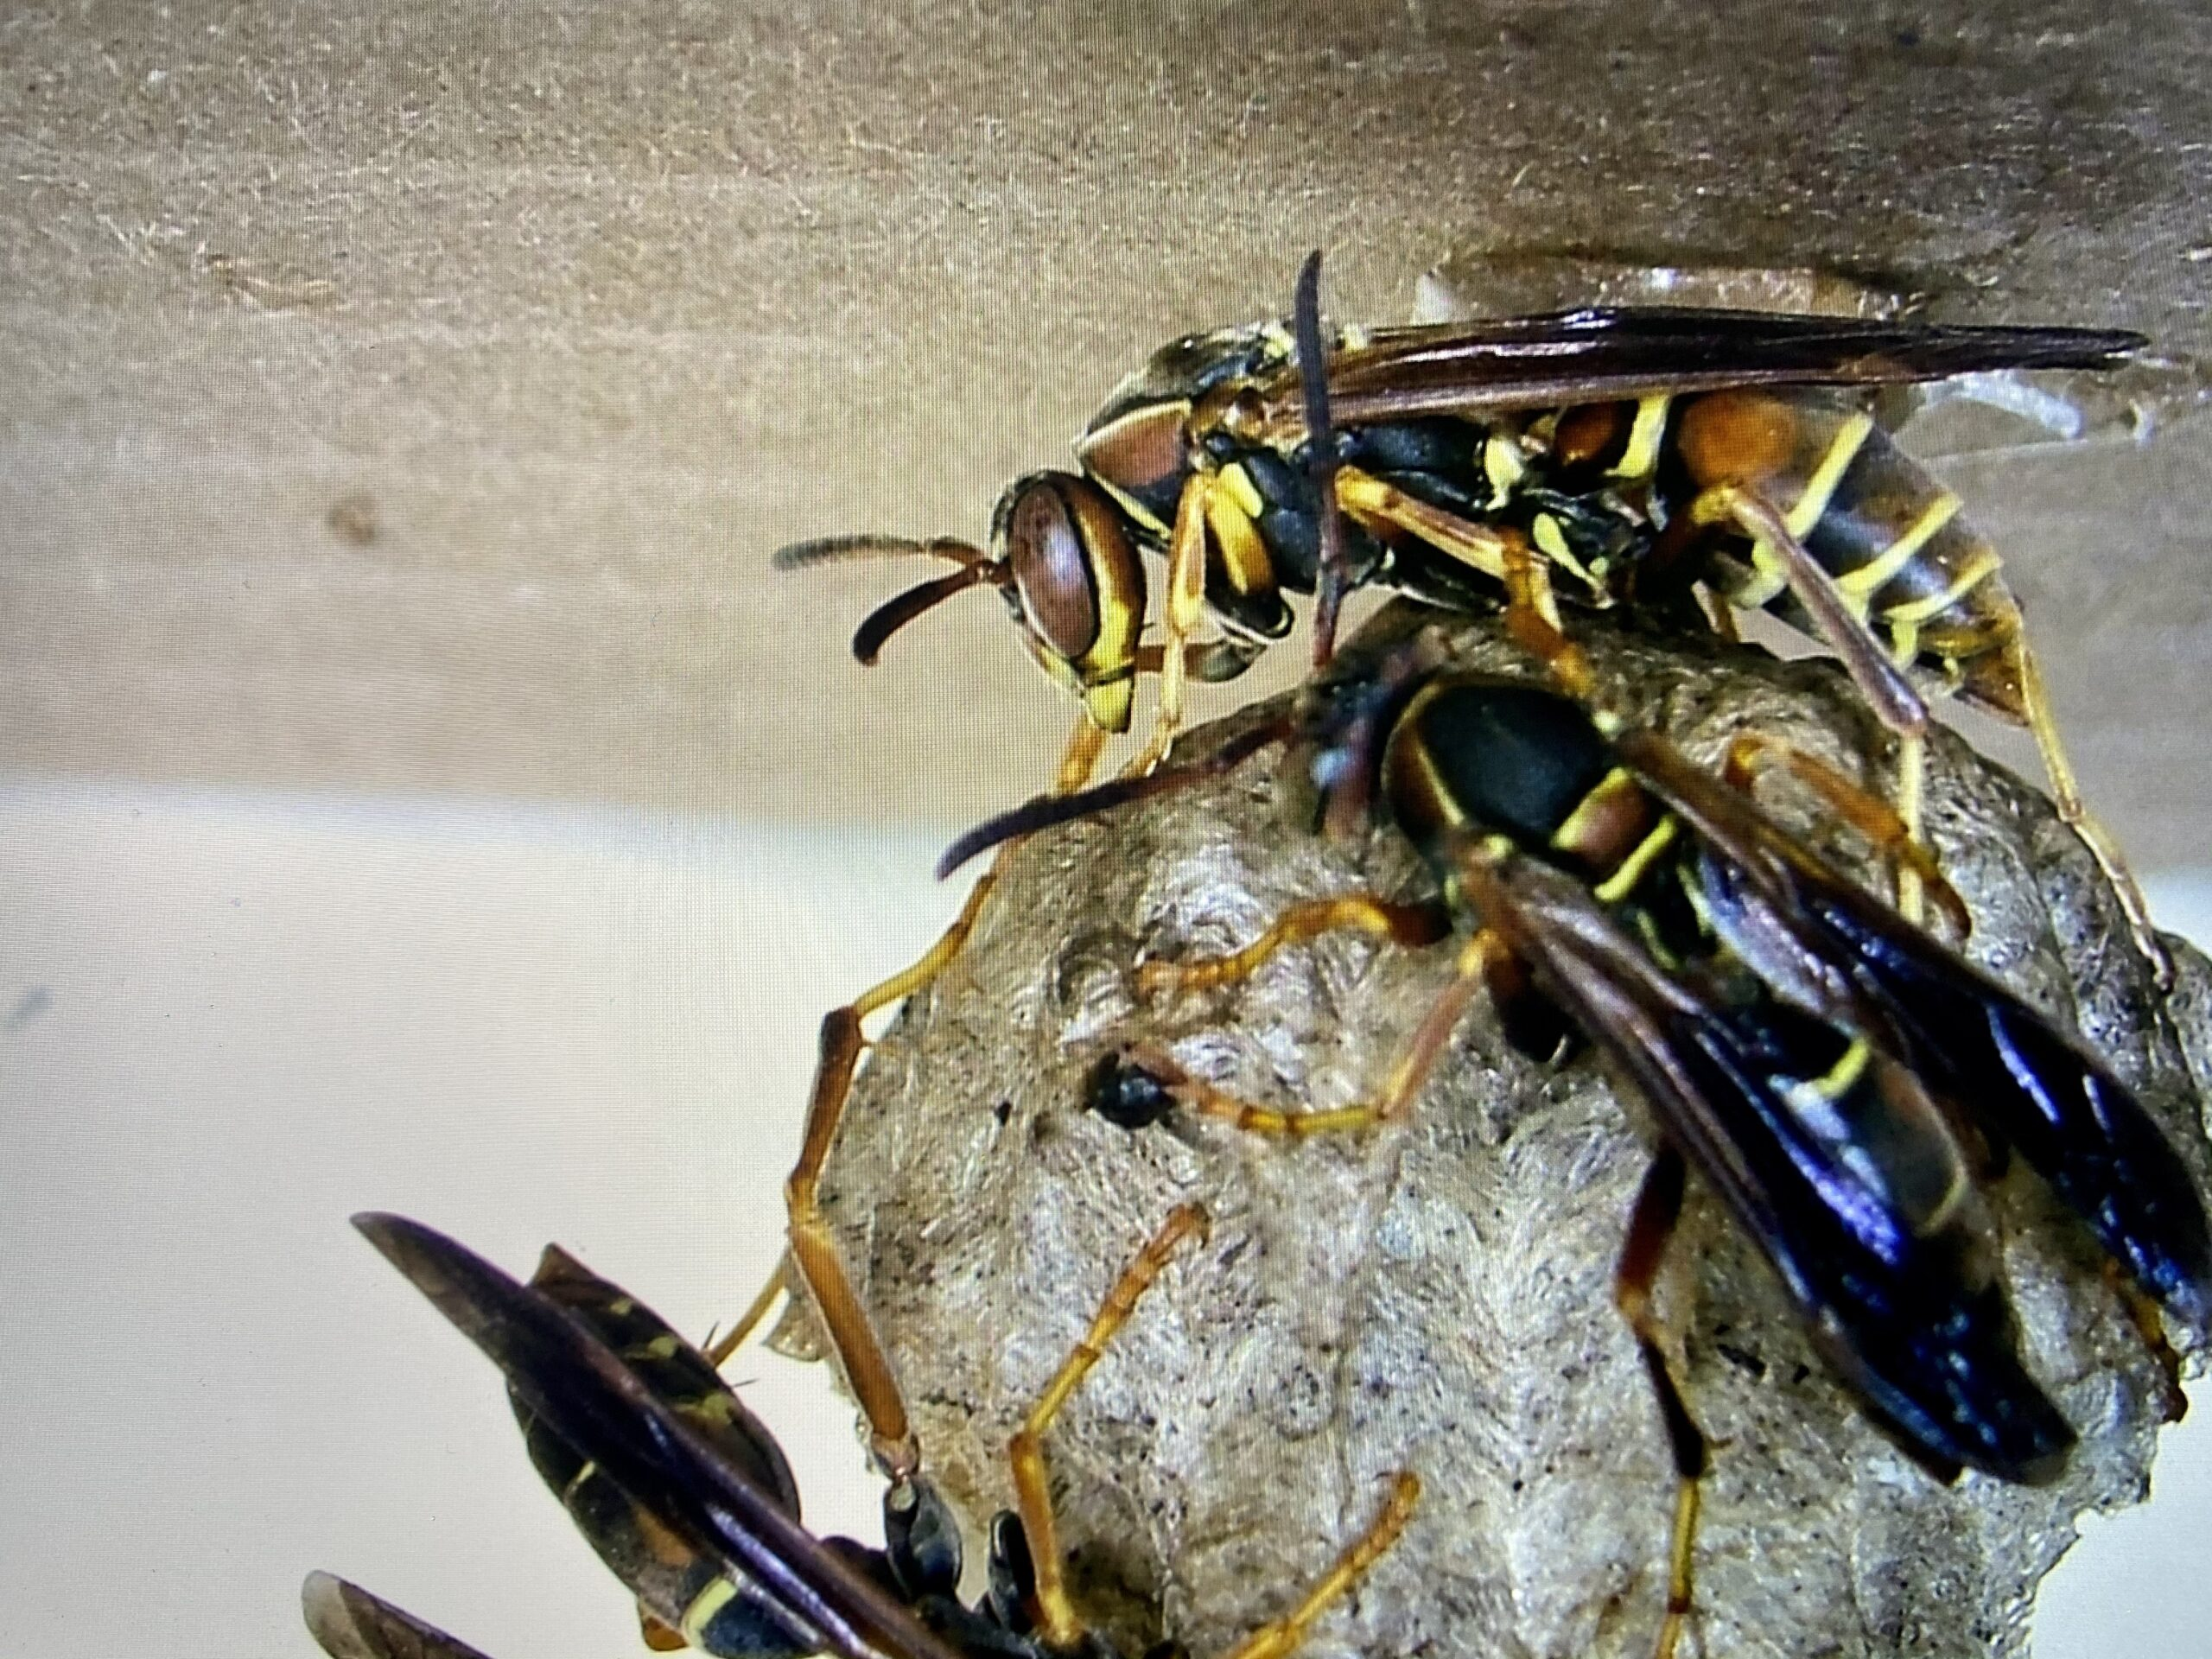 wasps, bees, yellow jackets, hornets